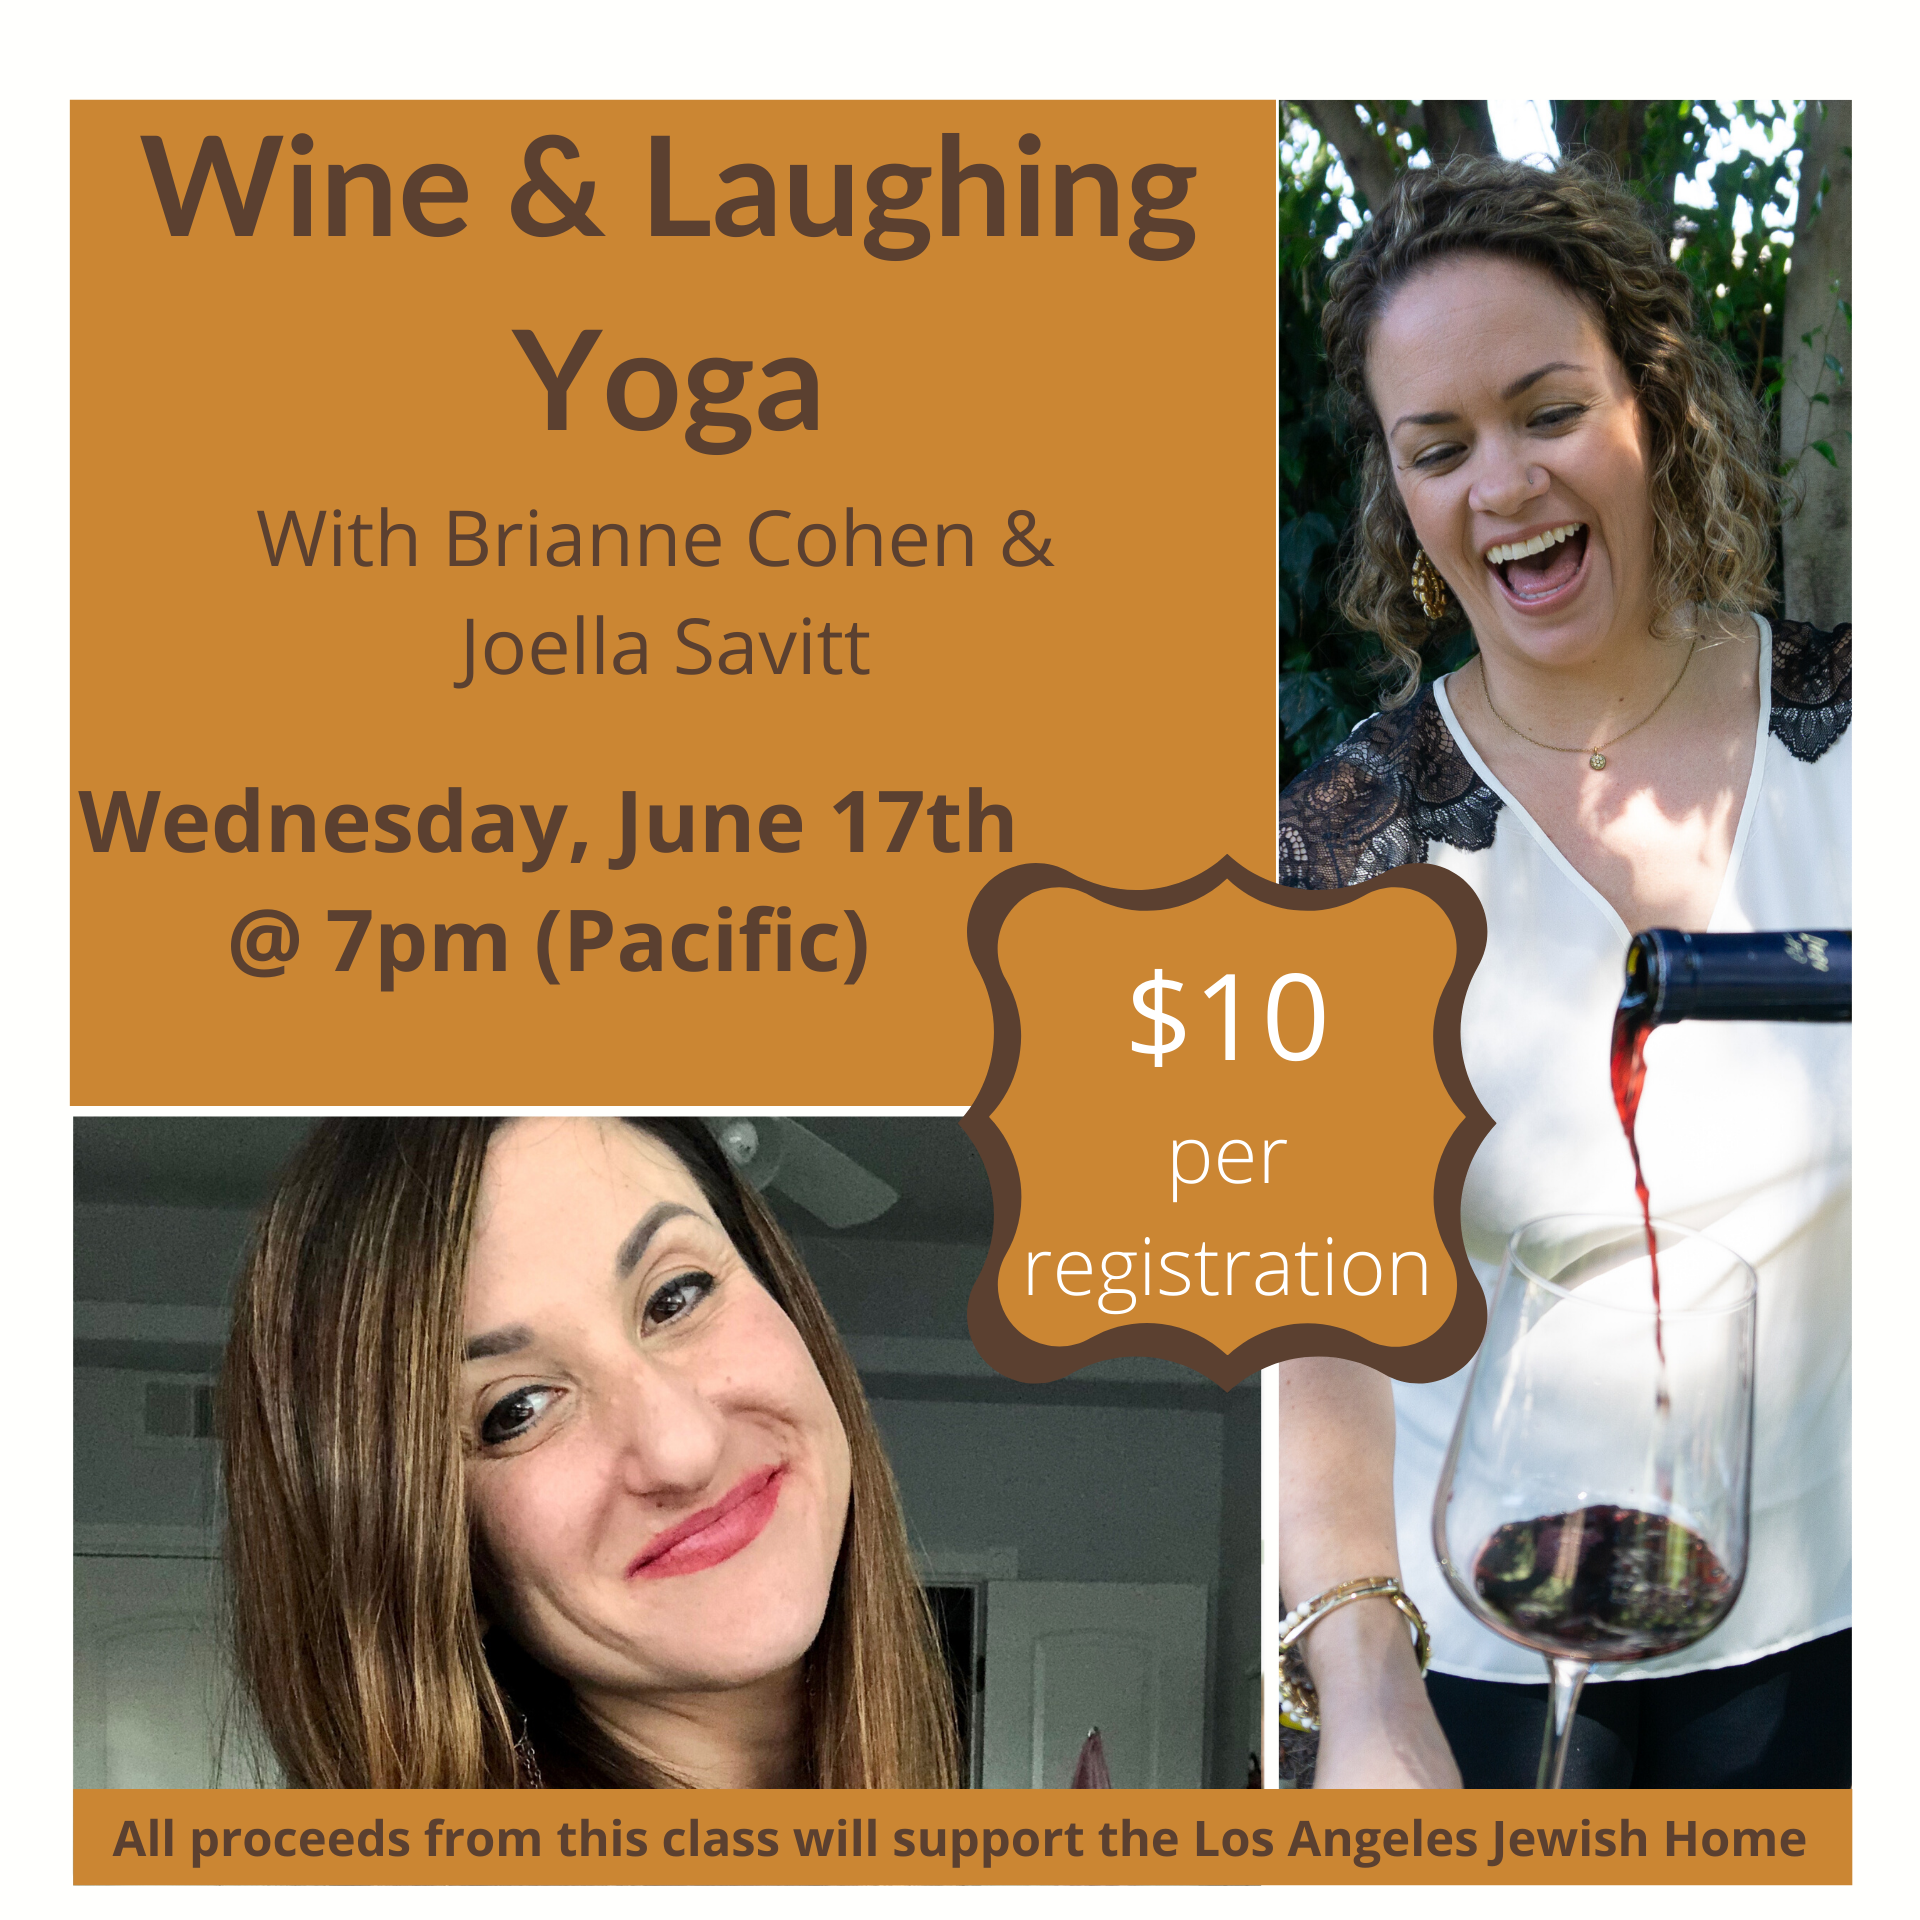 Wine and Laughing Yoga